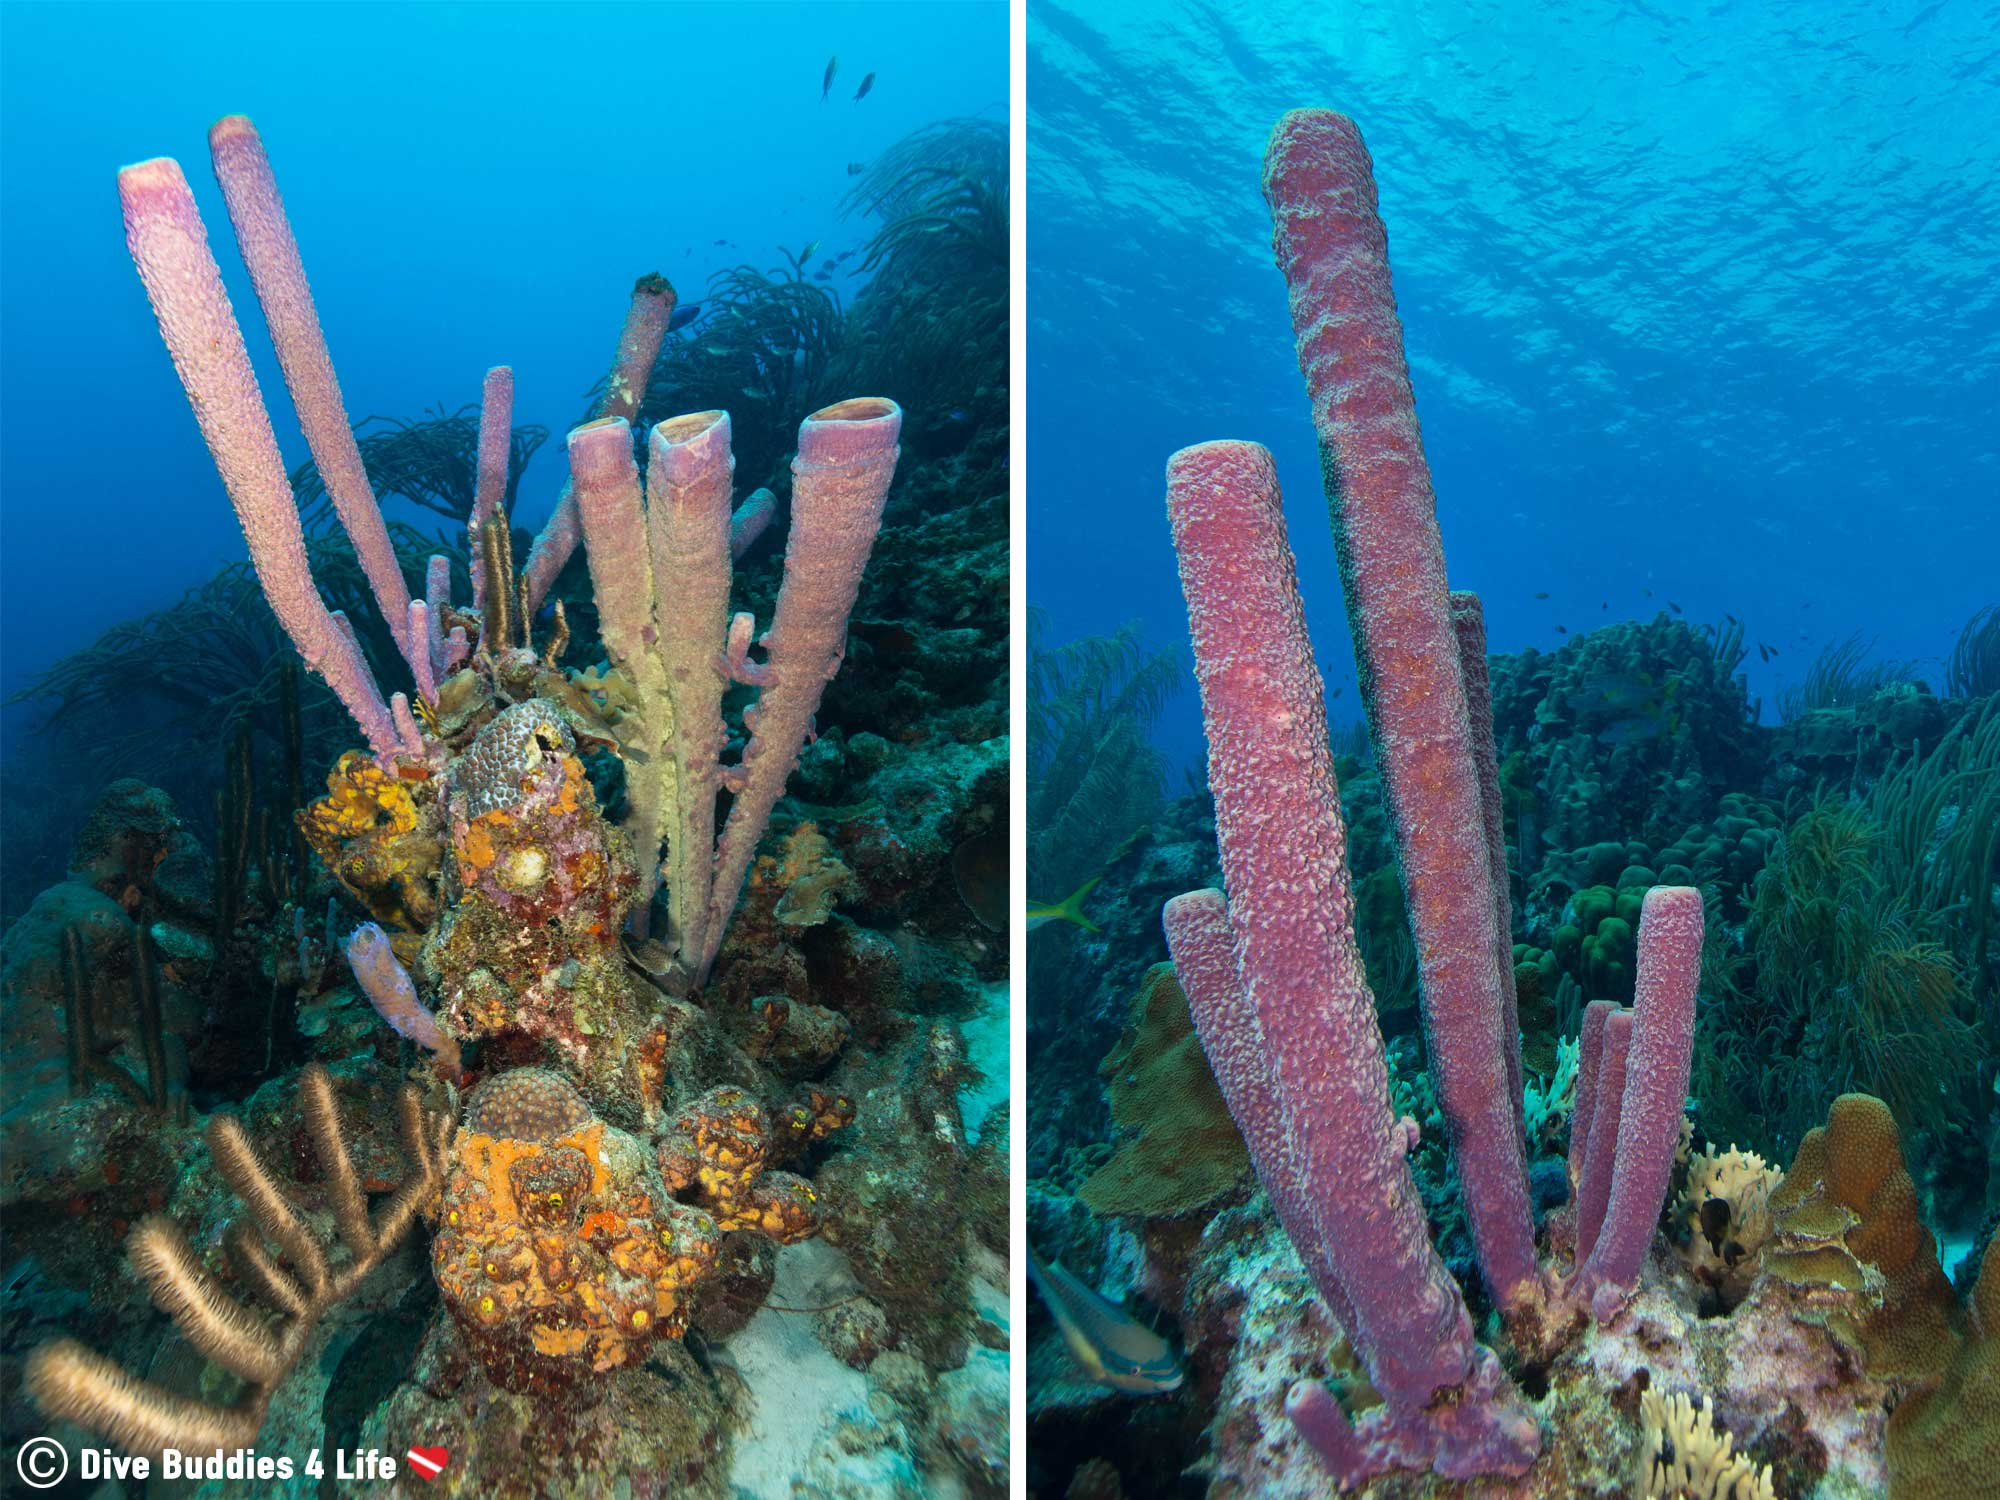 Vertical Wide Angle Underwater Photo Of Some Bonaire Sponges On The House Reef, Underwater Photography Tips